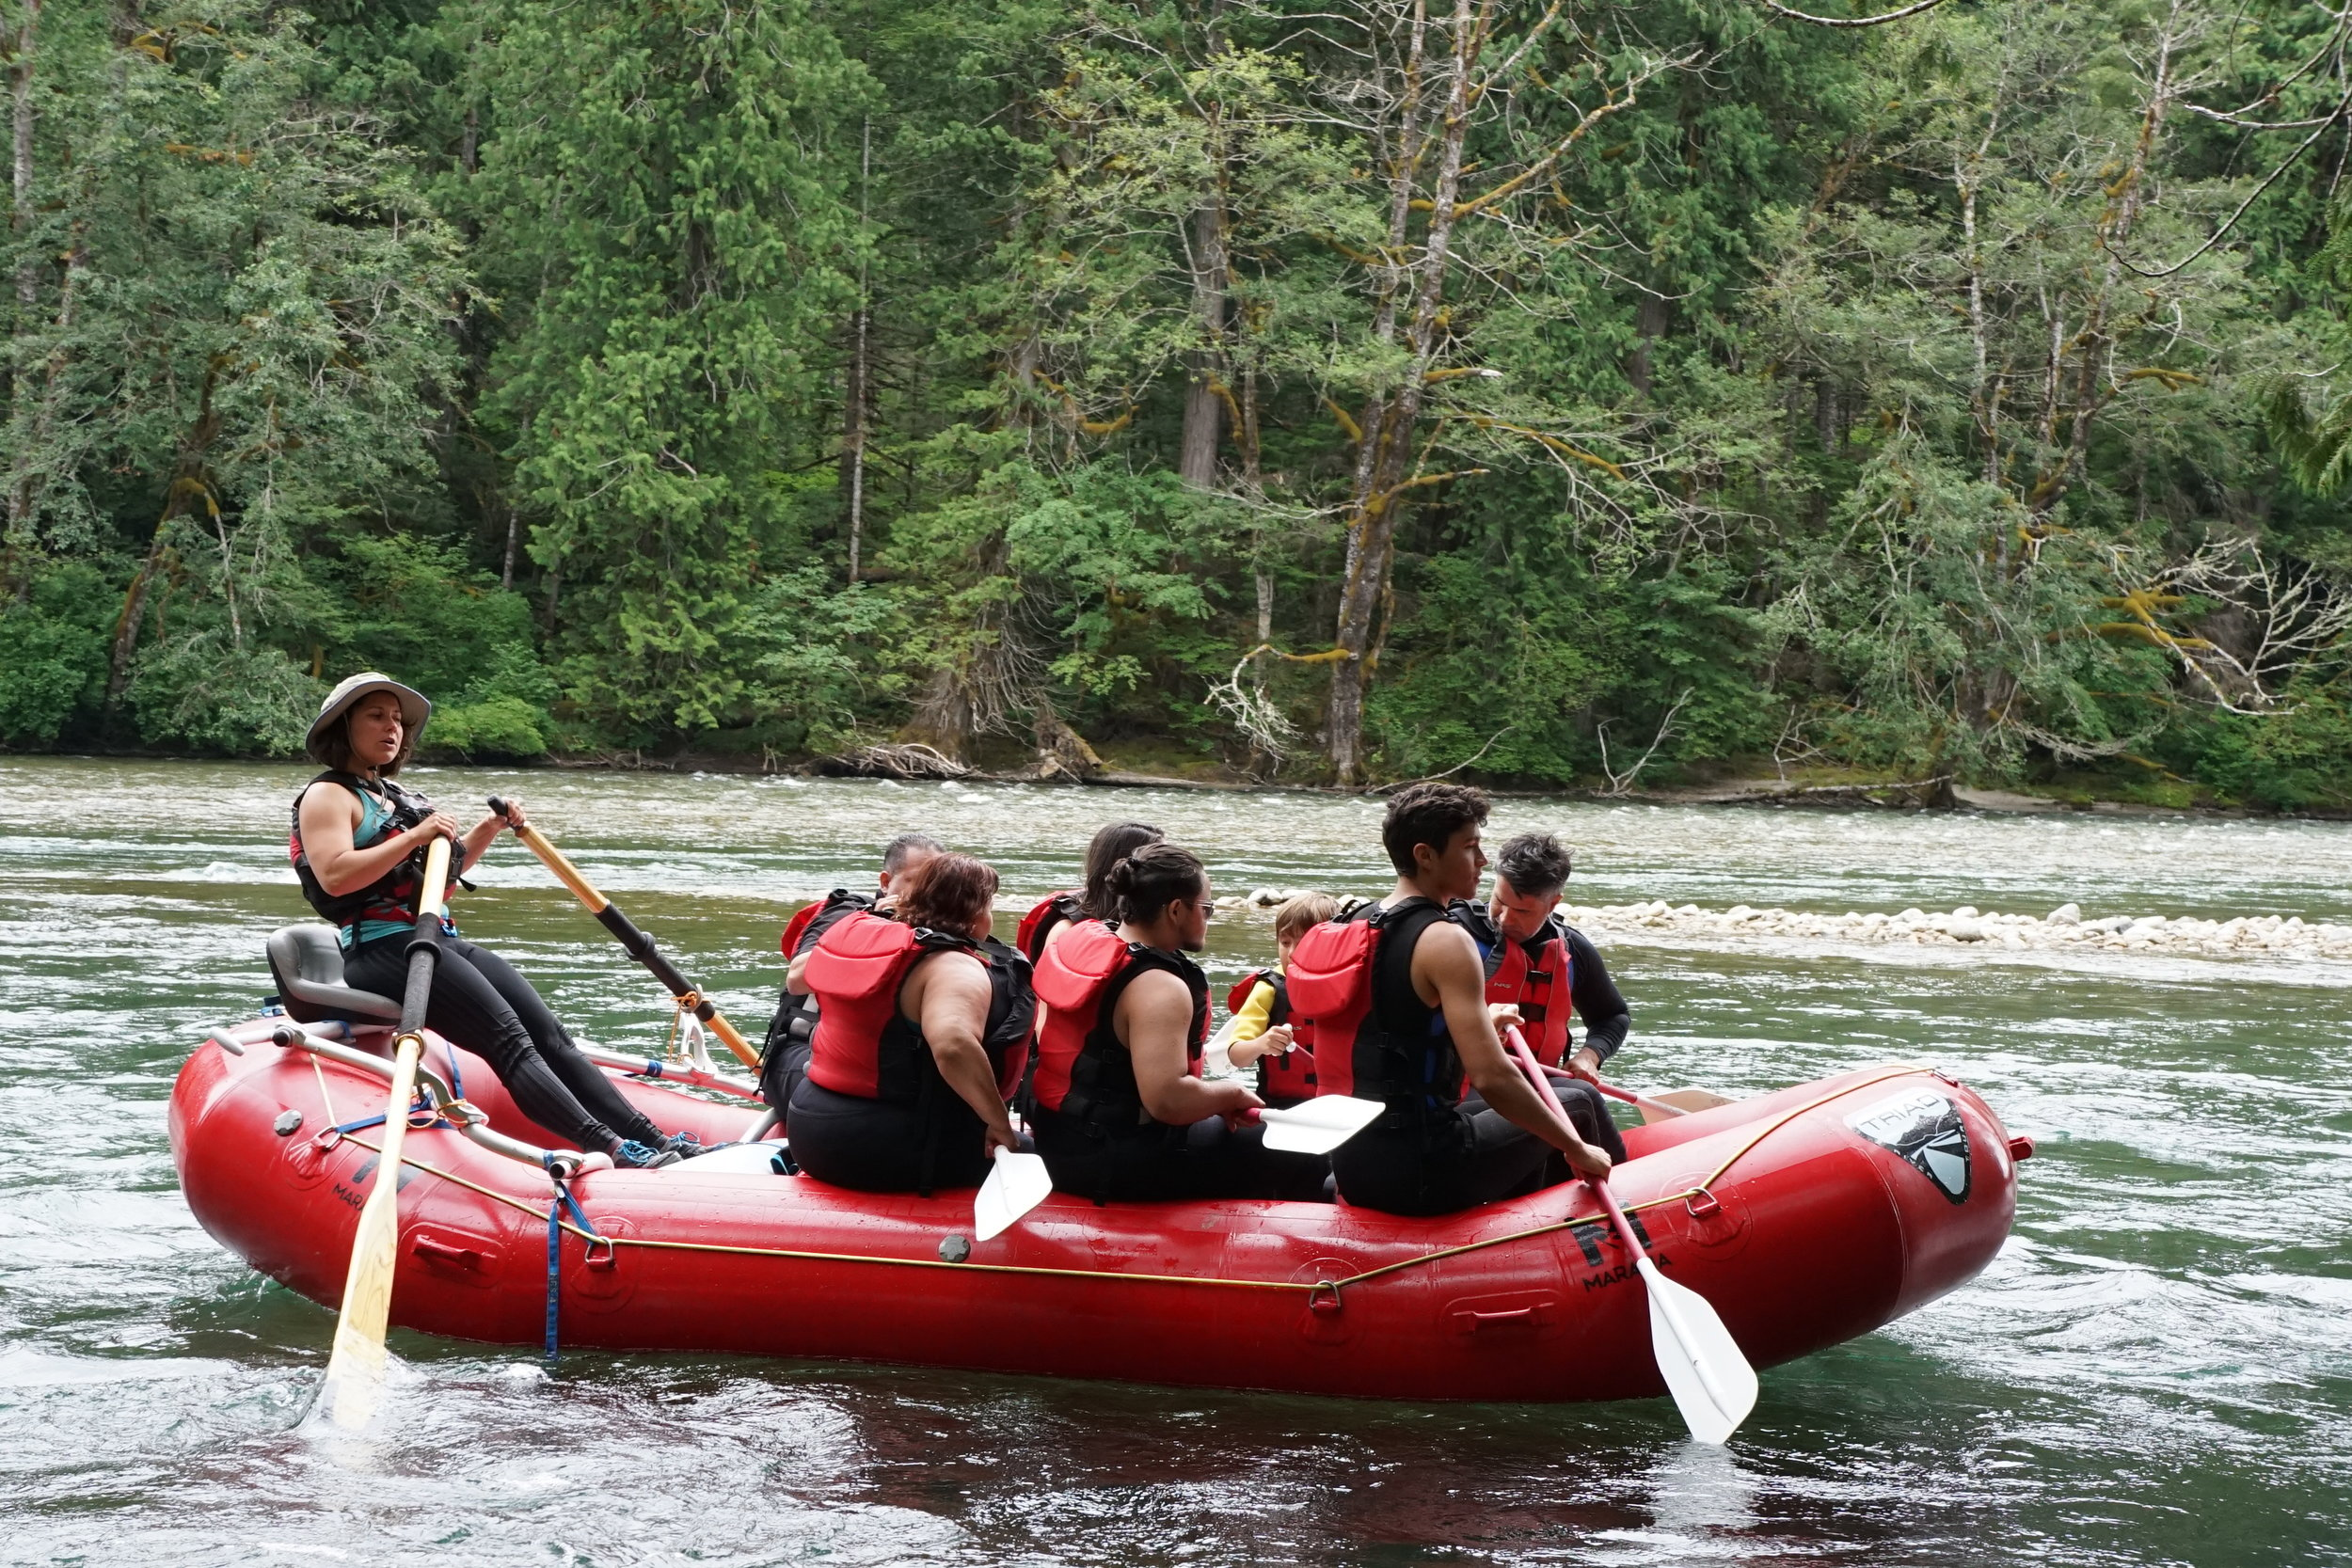 Here, our river guide, Danica, takes rafters down the Skagit River. She has been rafting for six years, and guiding for three.